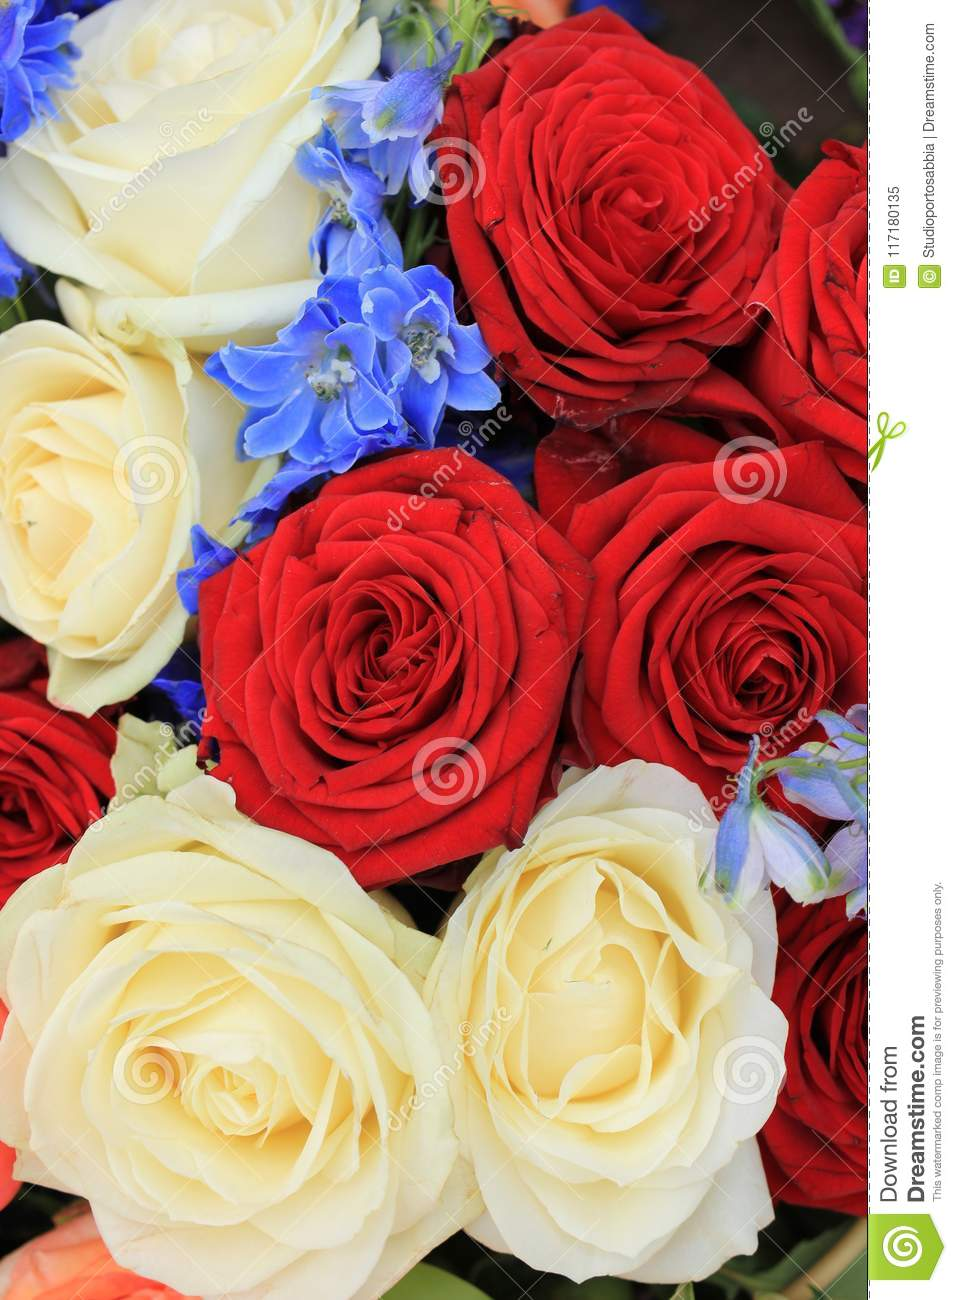 Red White And Blue Wedding Flowers Stock Image Image Of Blue